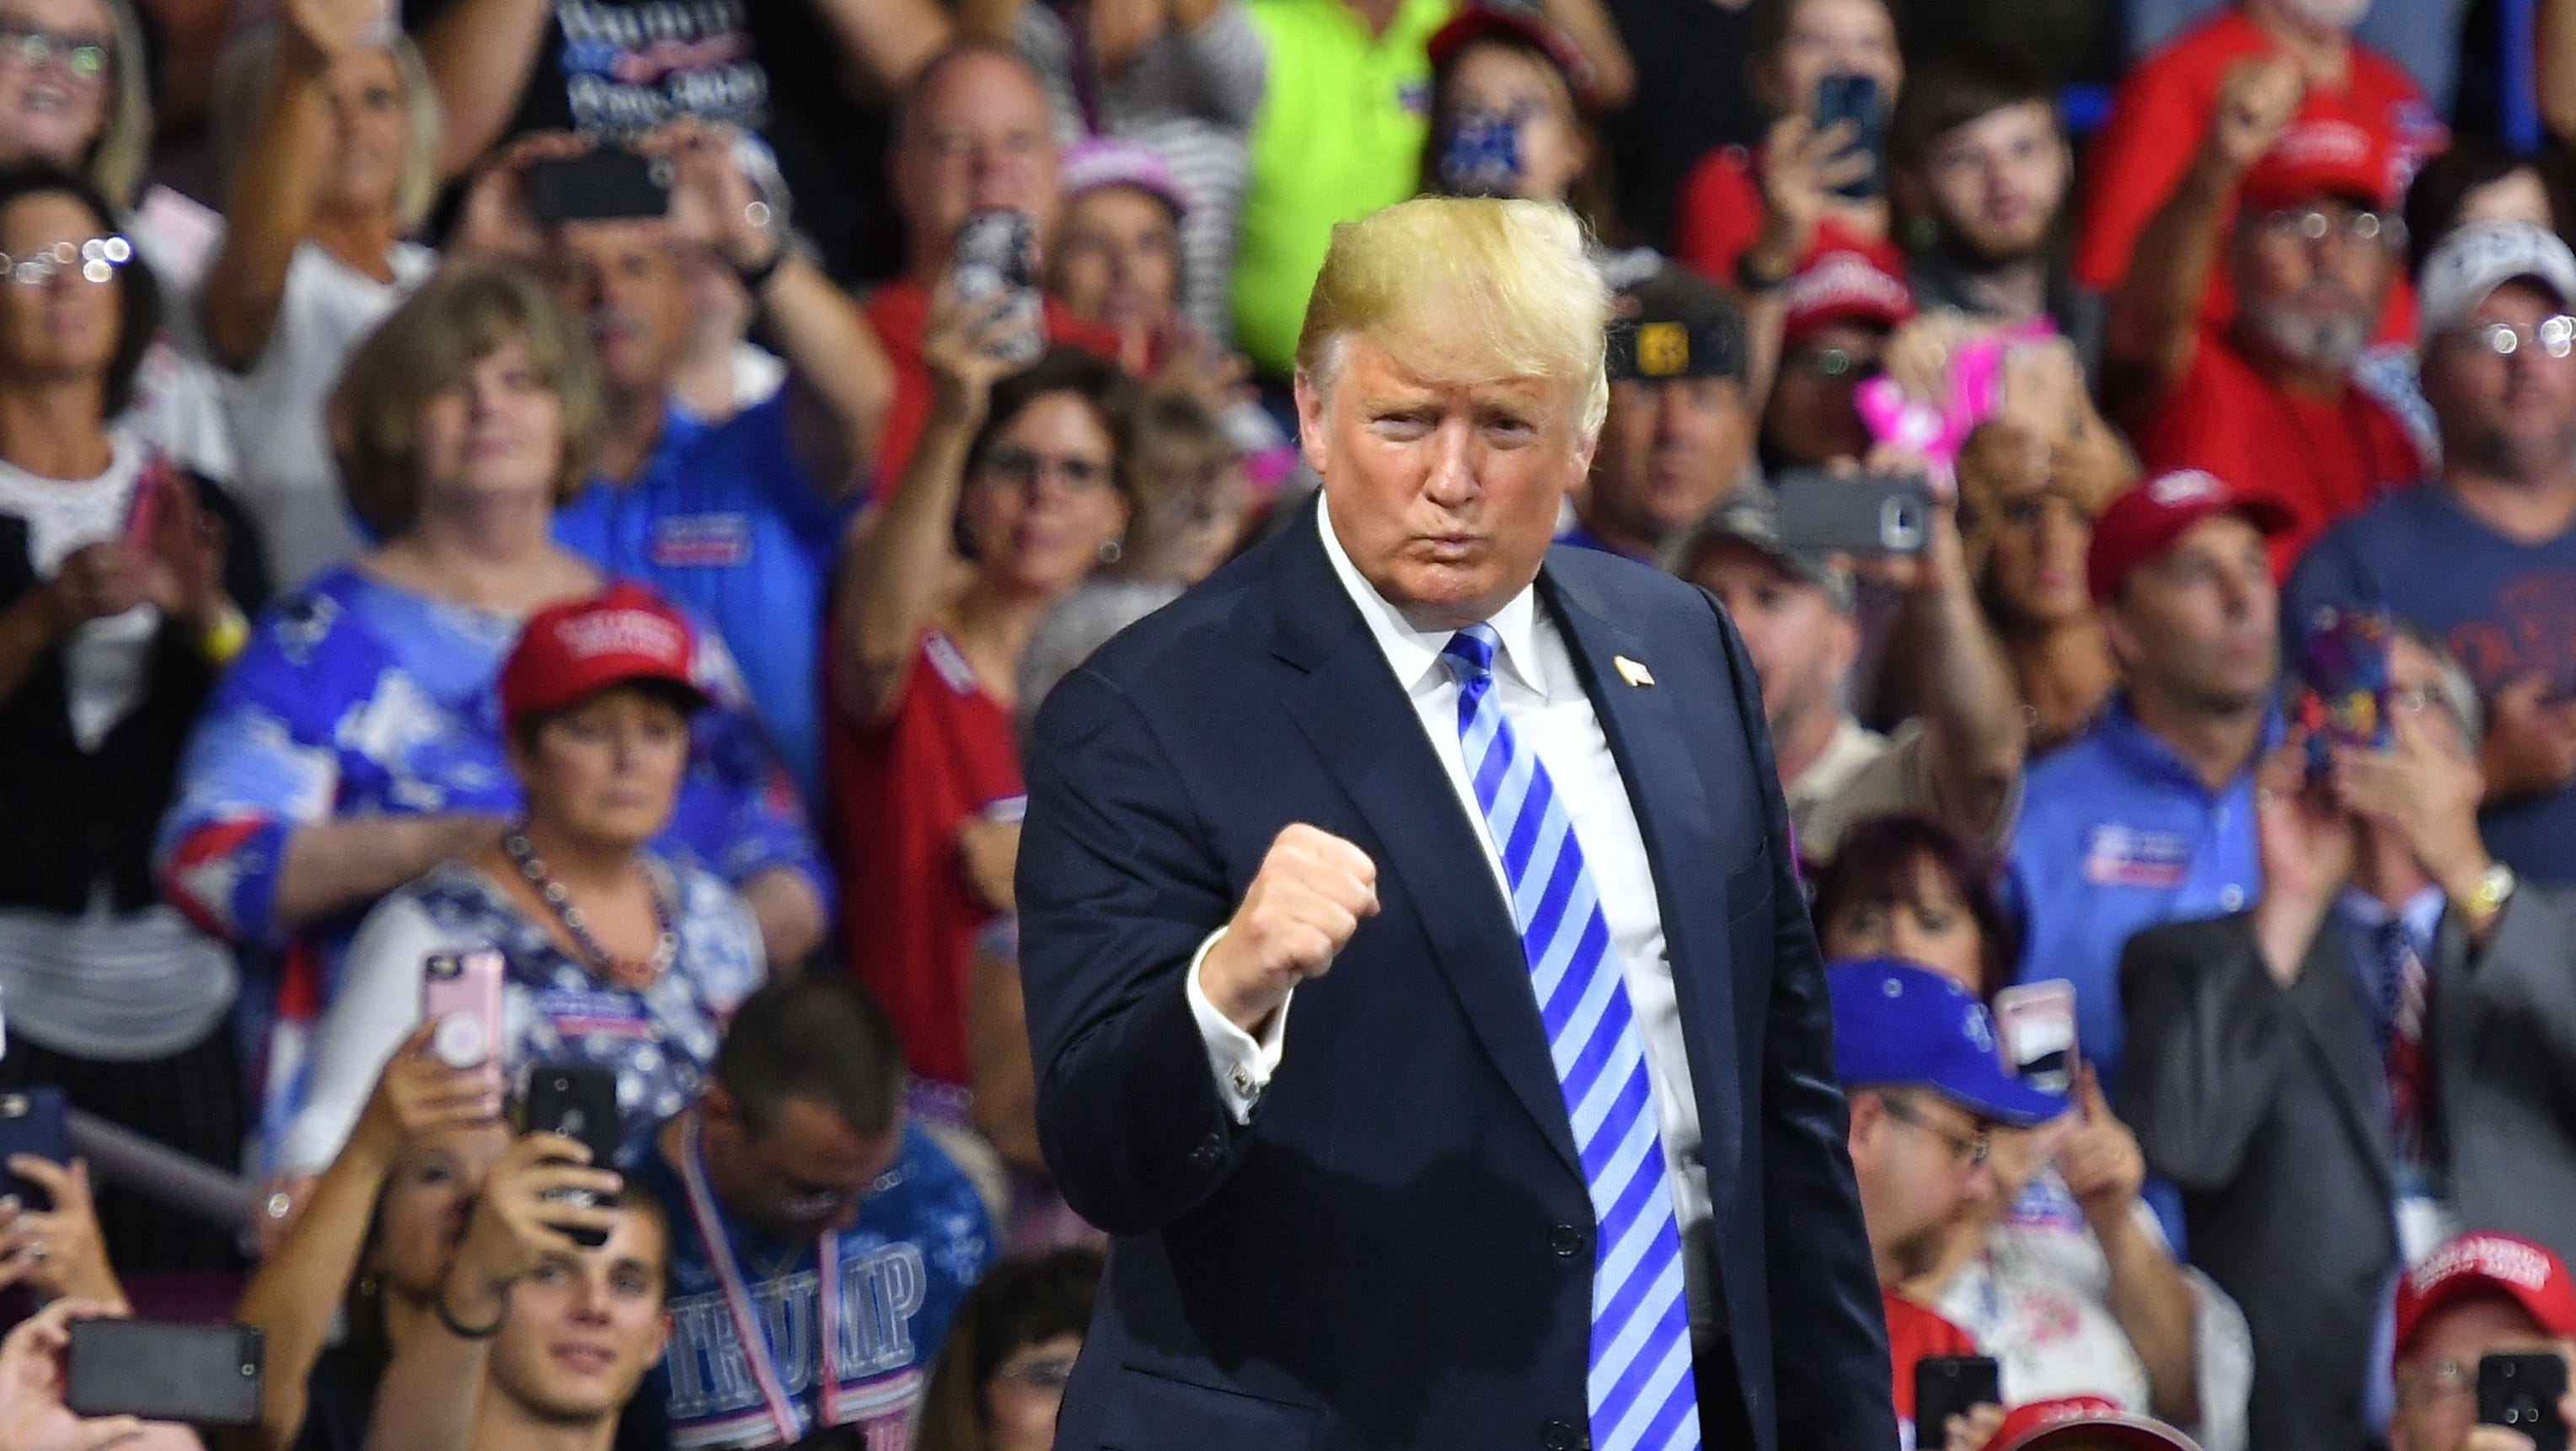 President Donald Trump salutes his supporters after speaking at a political rally at Charleston Civic Center in Charleston, W.Va. Tuesday.